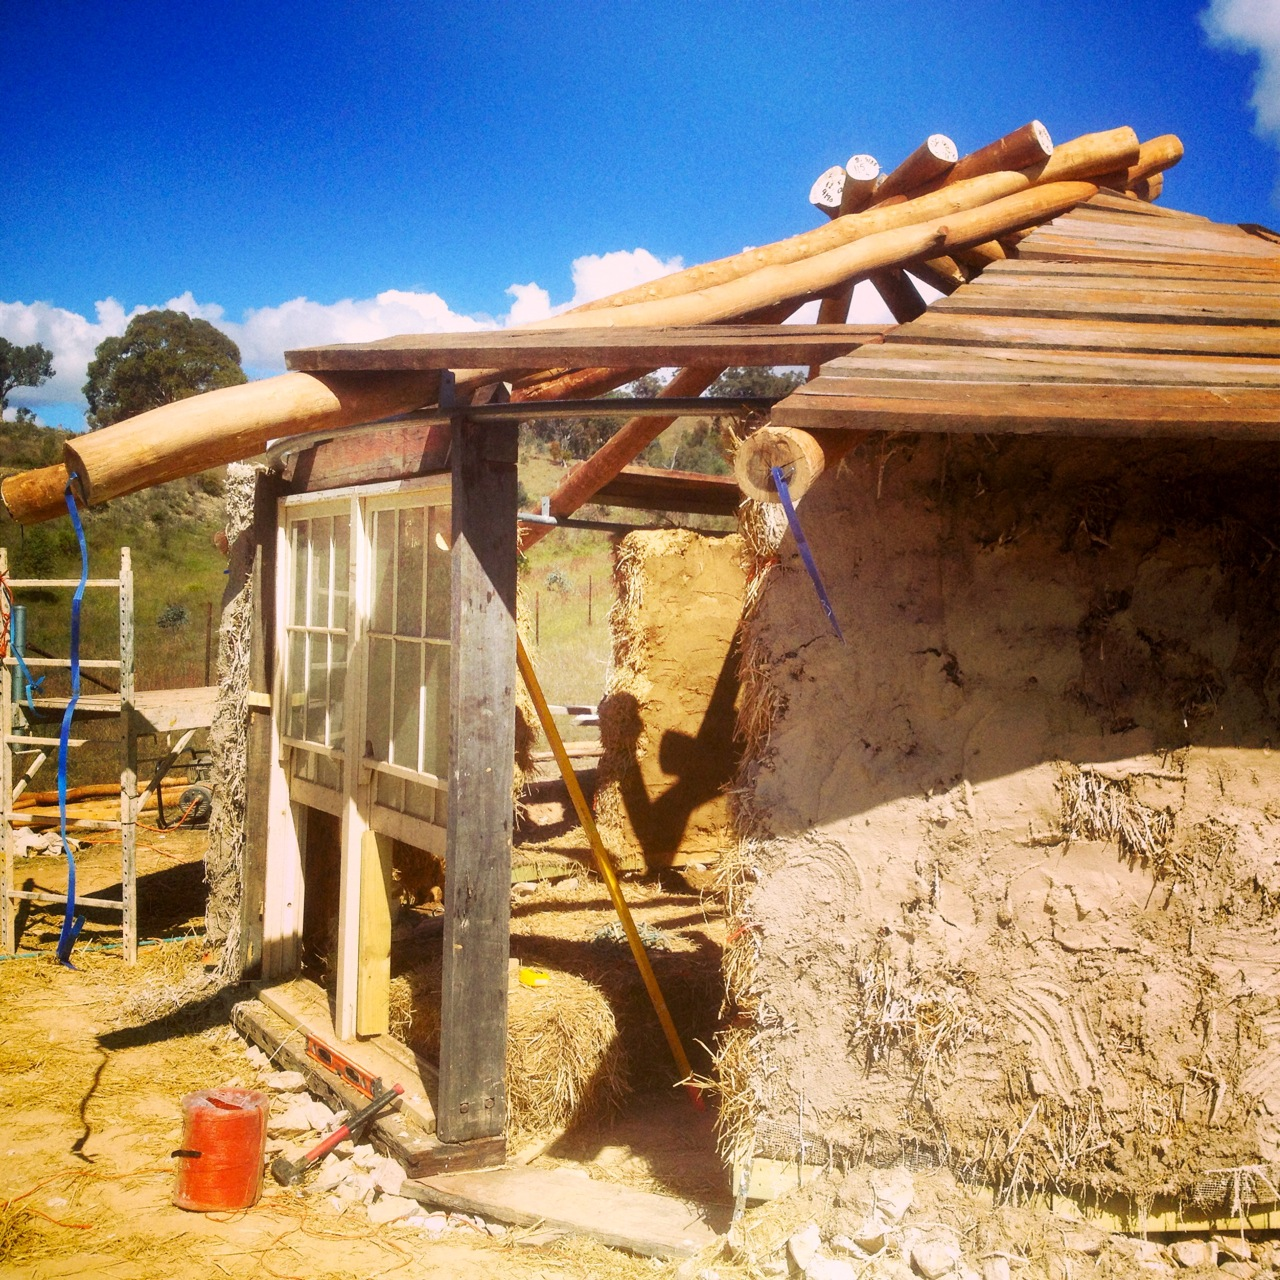 Roundhouse build update - the roof is on! - Milkwood